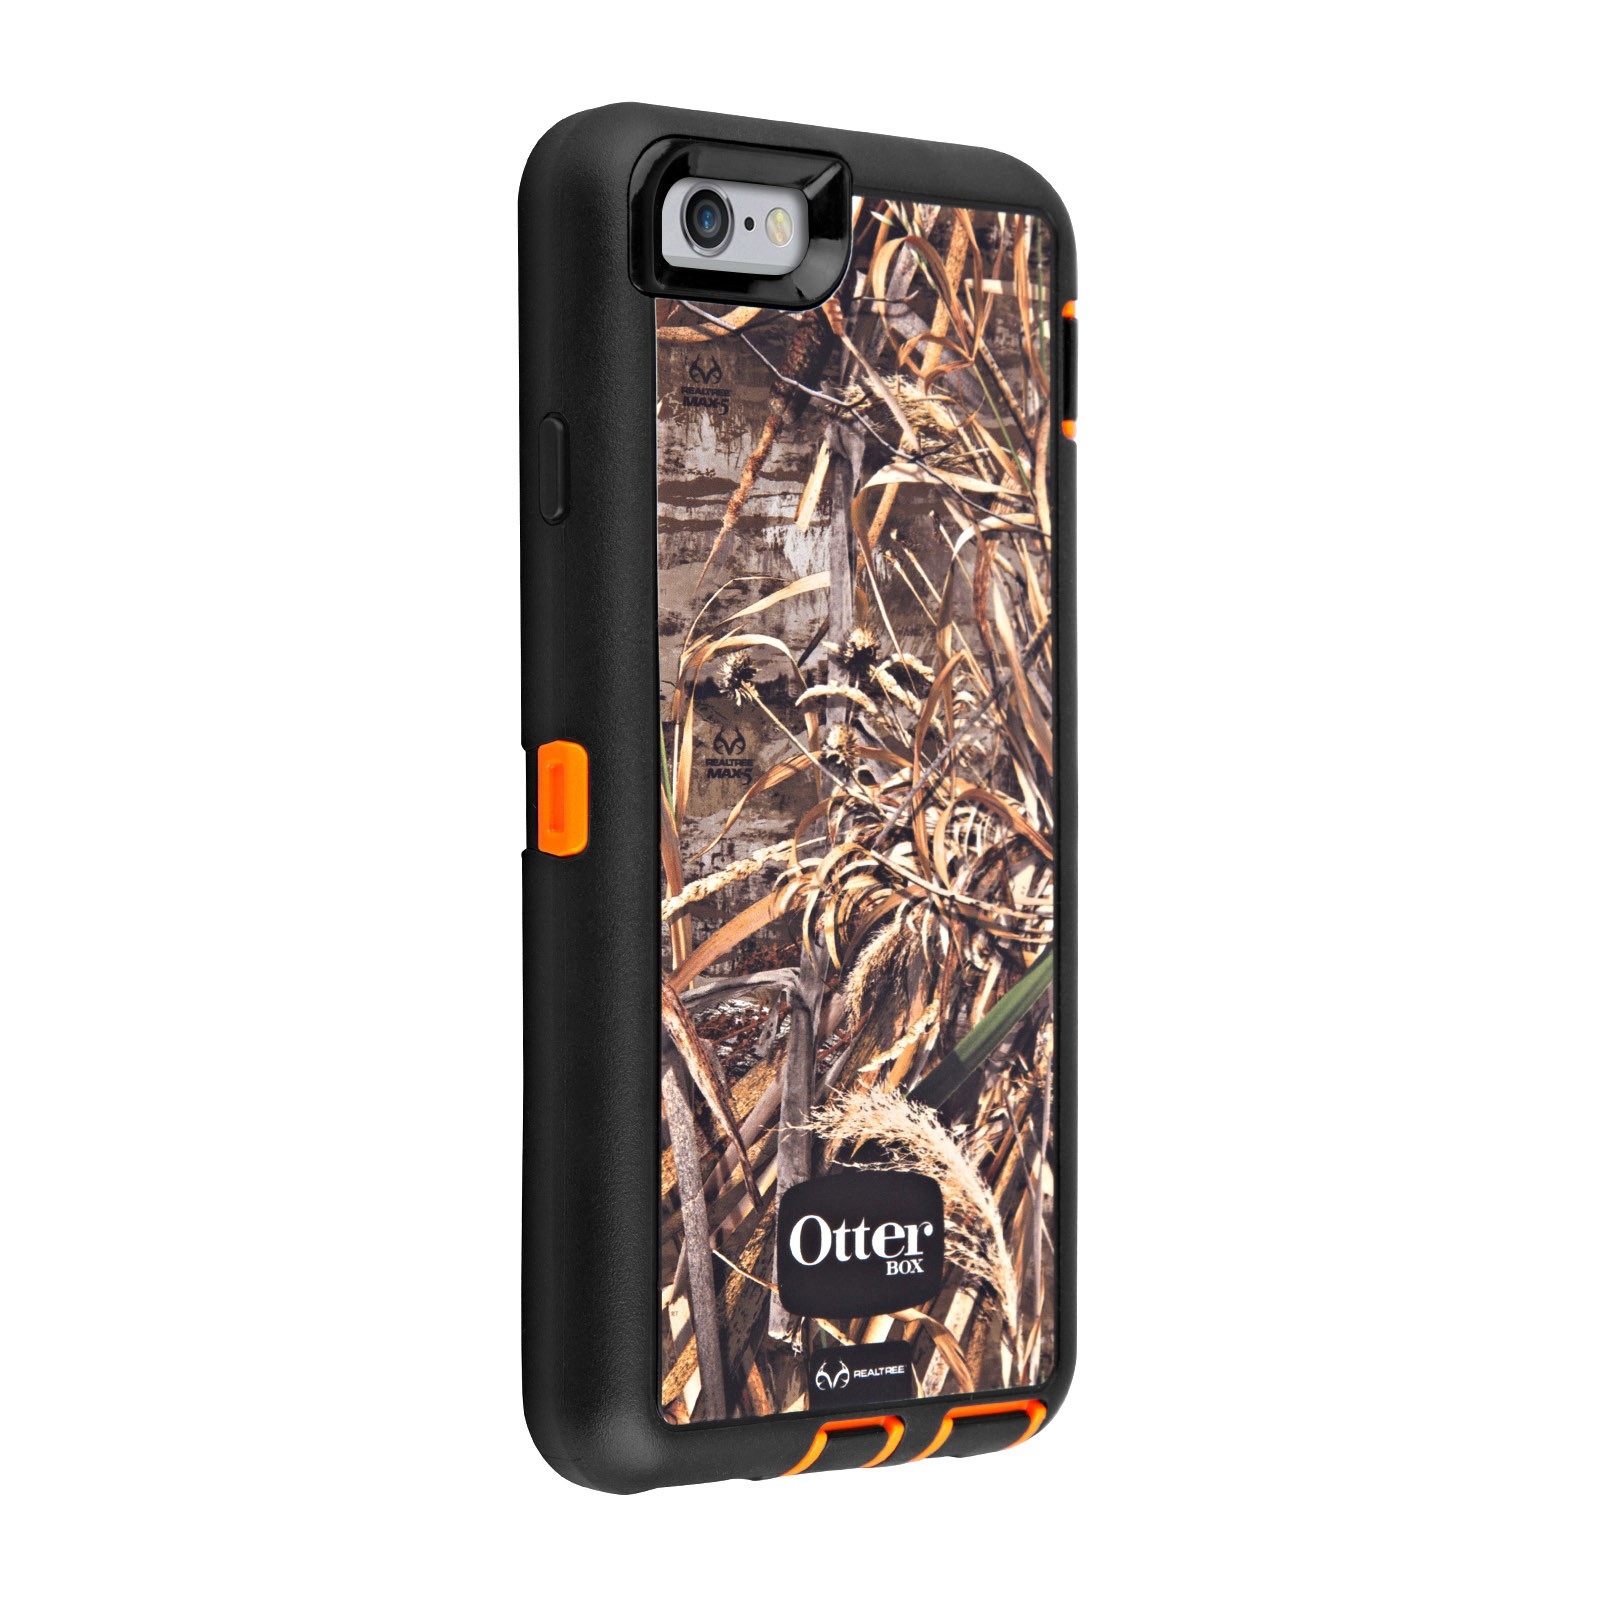 Case Design otter cell phone case : Cell Phones u0026 Accessories u0026gt; Cell Phone Accessories u0026gt; Cases, Covers ...